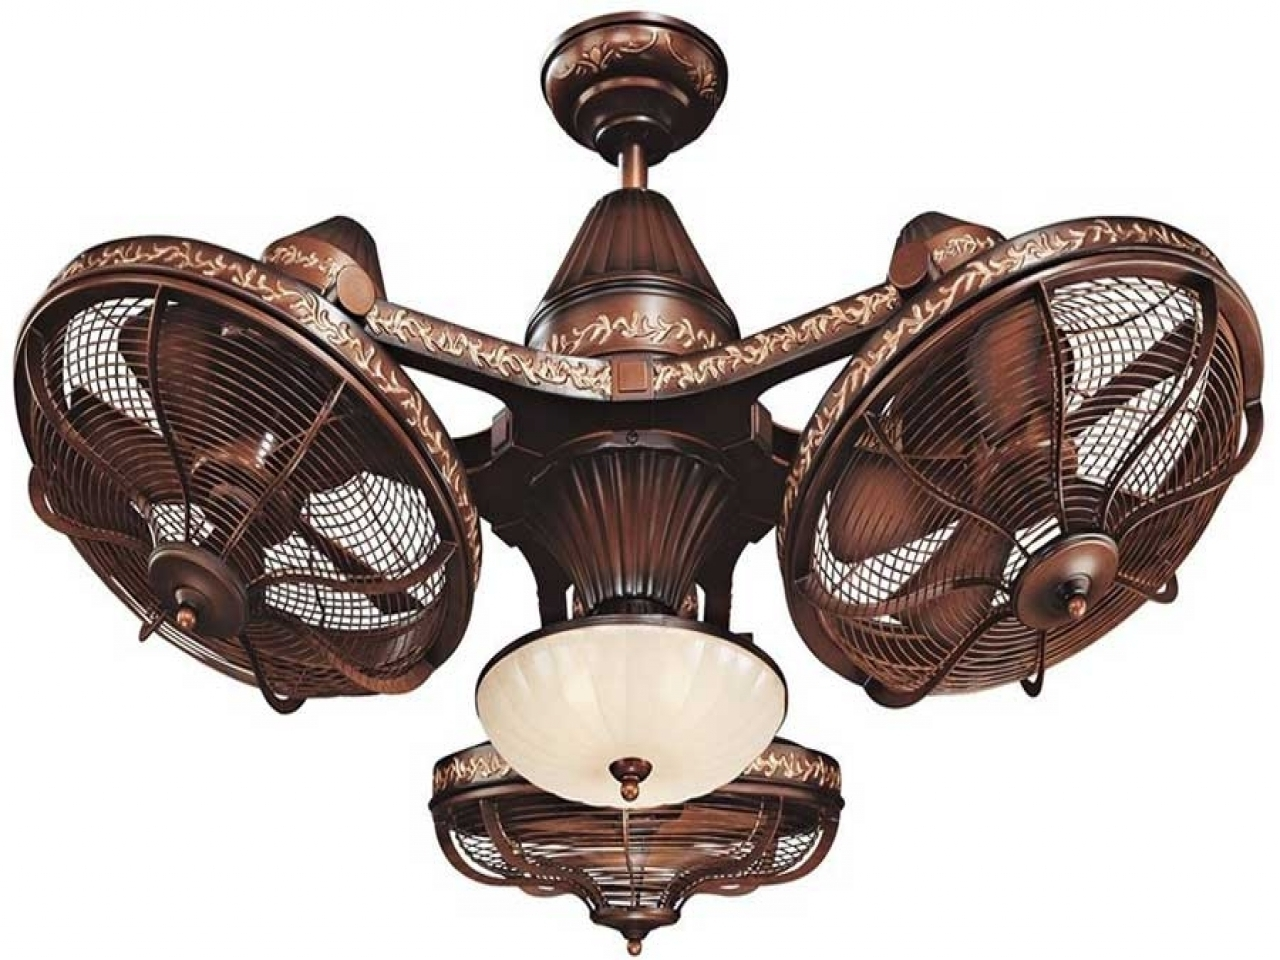 Home Design Hunter Outdoor Ceiling Fan Tropical Fans Unique Regarding 2019 Tropical Design Outdoor Ceiling Fans (View 7 of 20)